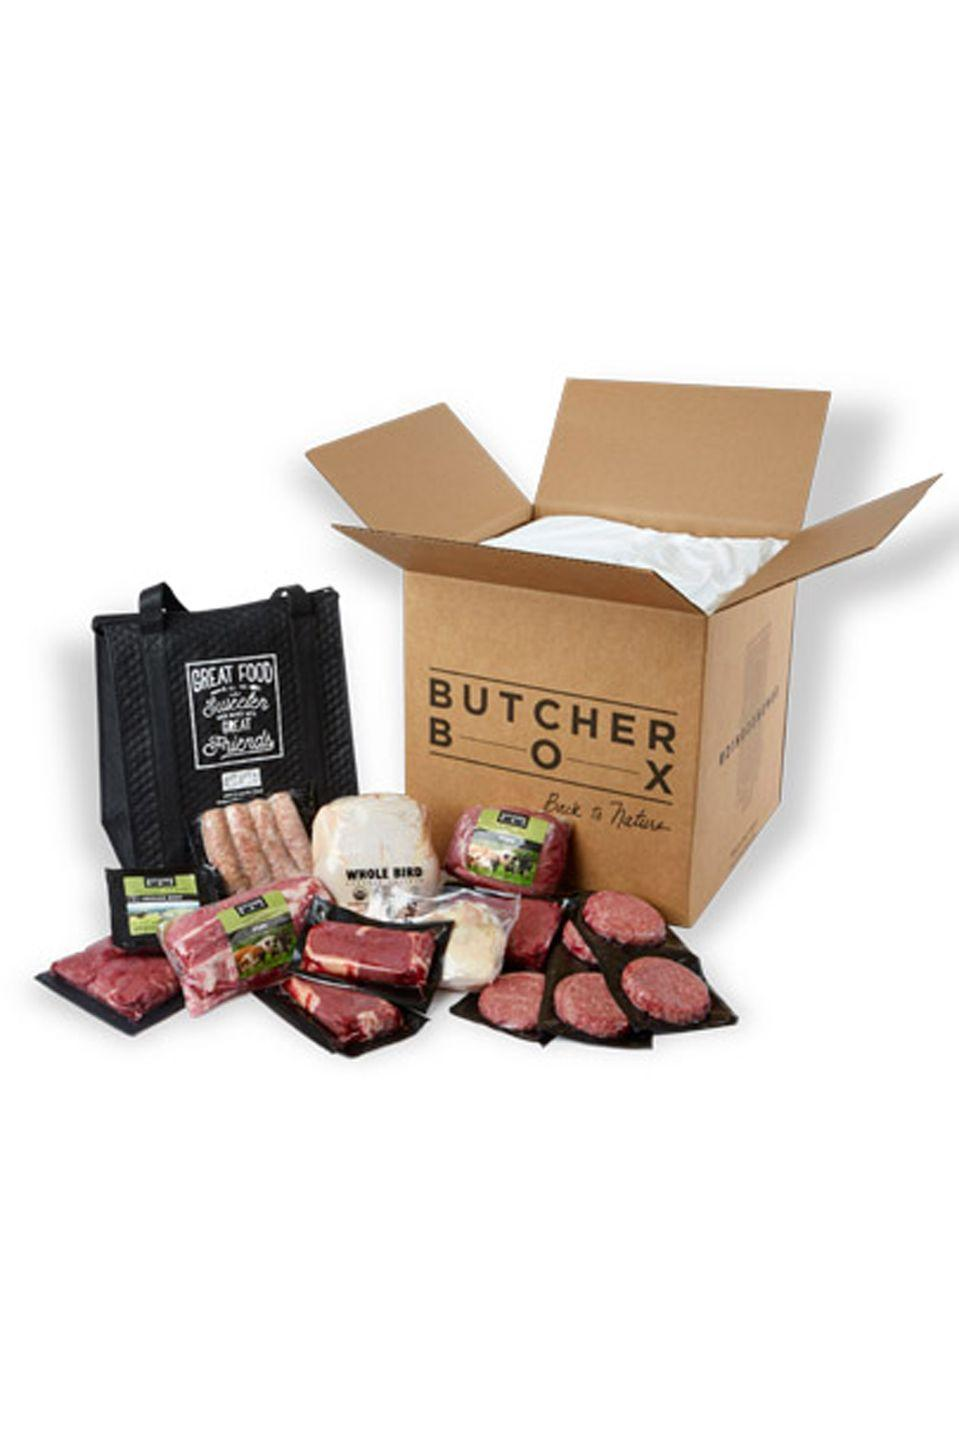 """<p> Choose from curated packs of chicken, pork, and beef, or customize a box of dad's favorites delivered to his front door.</p><p><a class=""""link rapid-noclick-resp"""" href=""""https://fave.co/2pGxkzF"""" rel=""""nofollow noopener"""" target=""""_blank"""" data-ylk=""""slk:SHOP NOW"""">SHOP NOW</a><br></p>"""